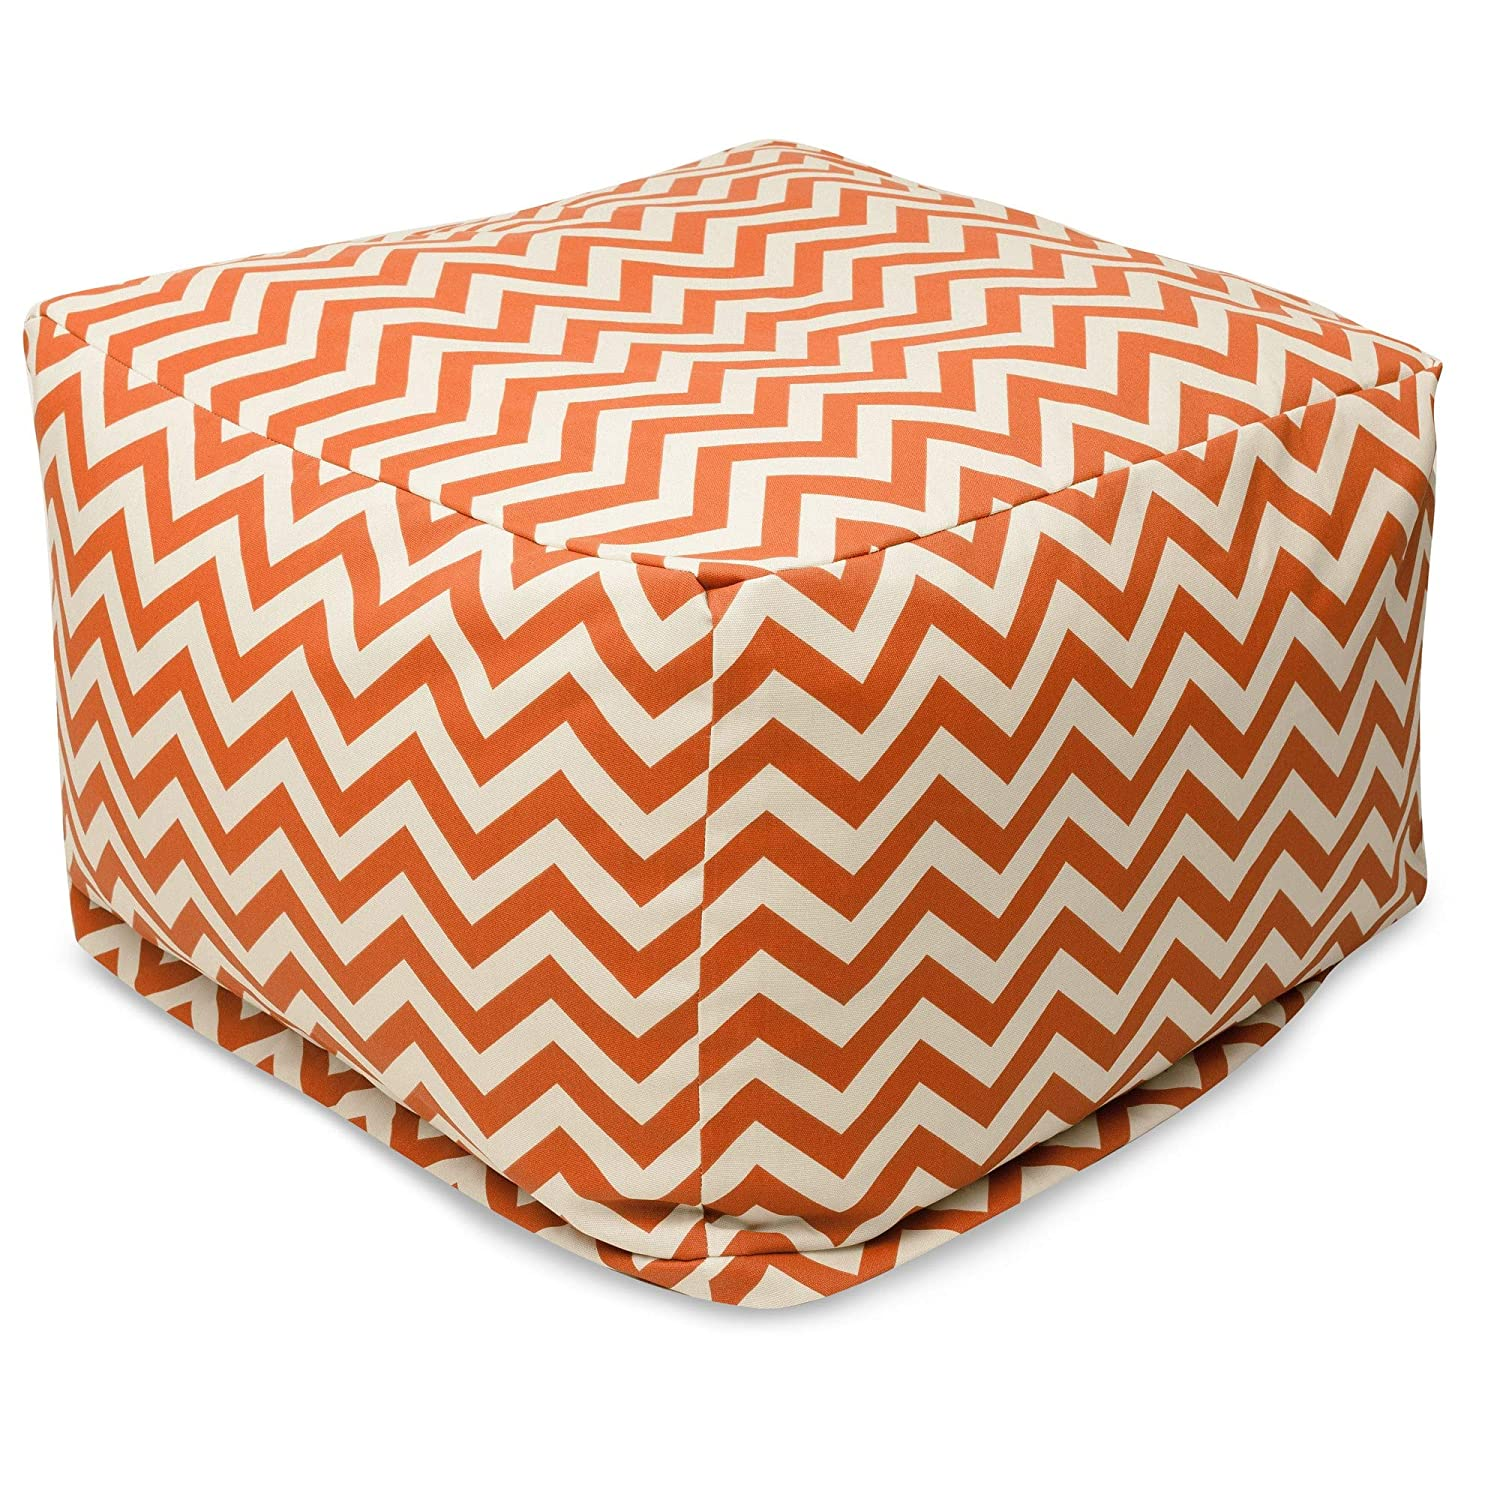 Majestic Home Goods Burnt Orange Zig Zag Ottoman, Large